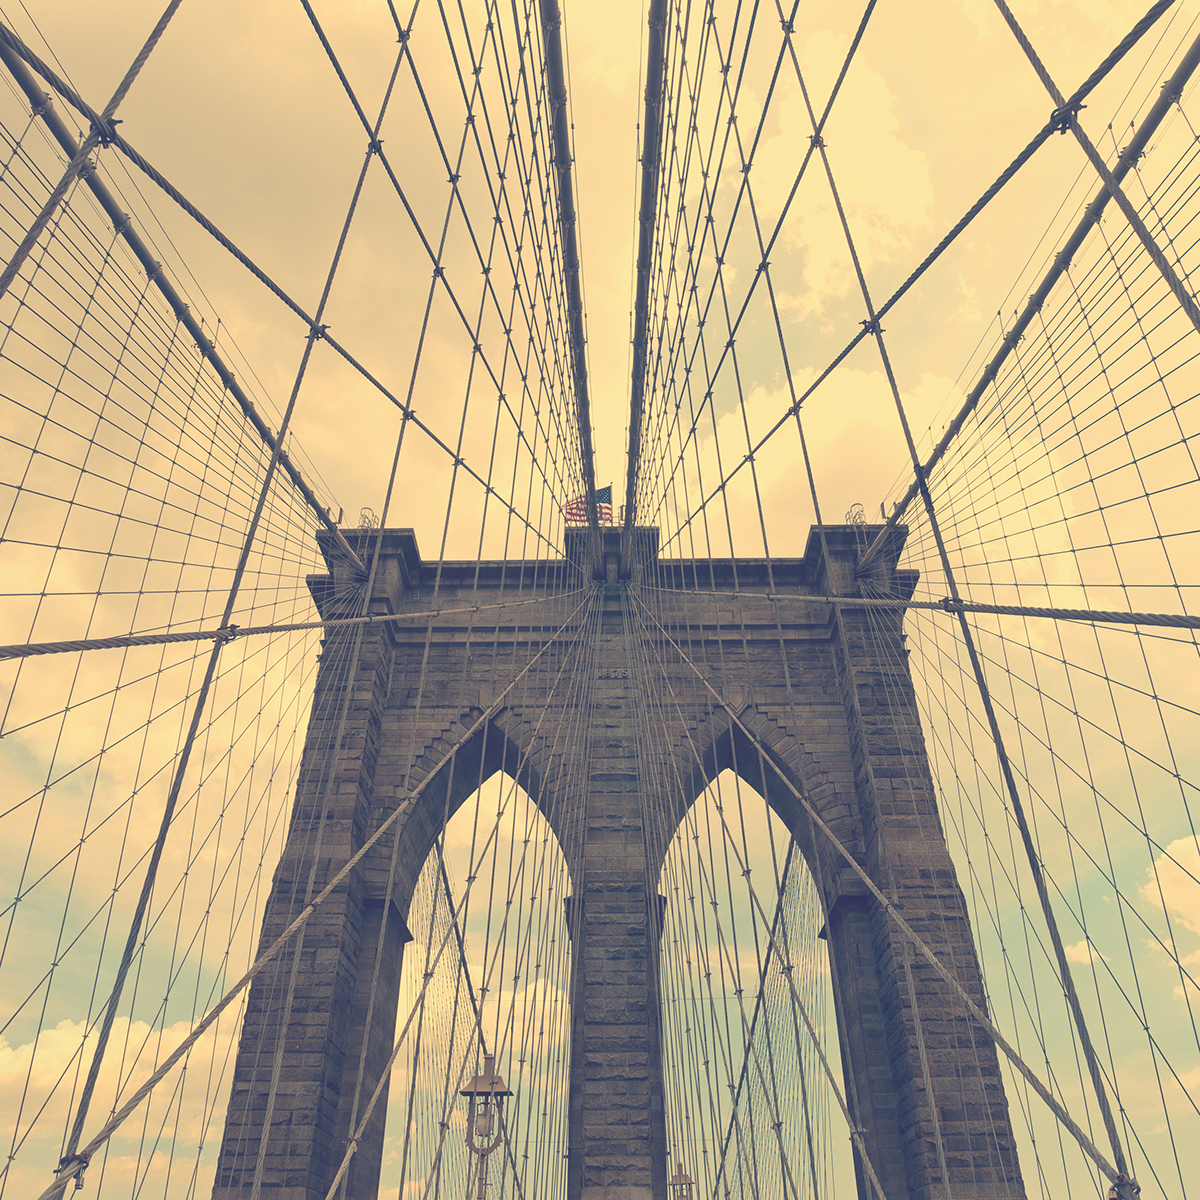 Puente de Brooklyn turismo NEW YORK 2017